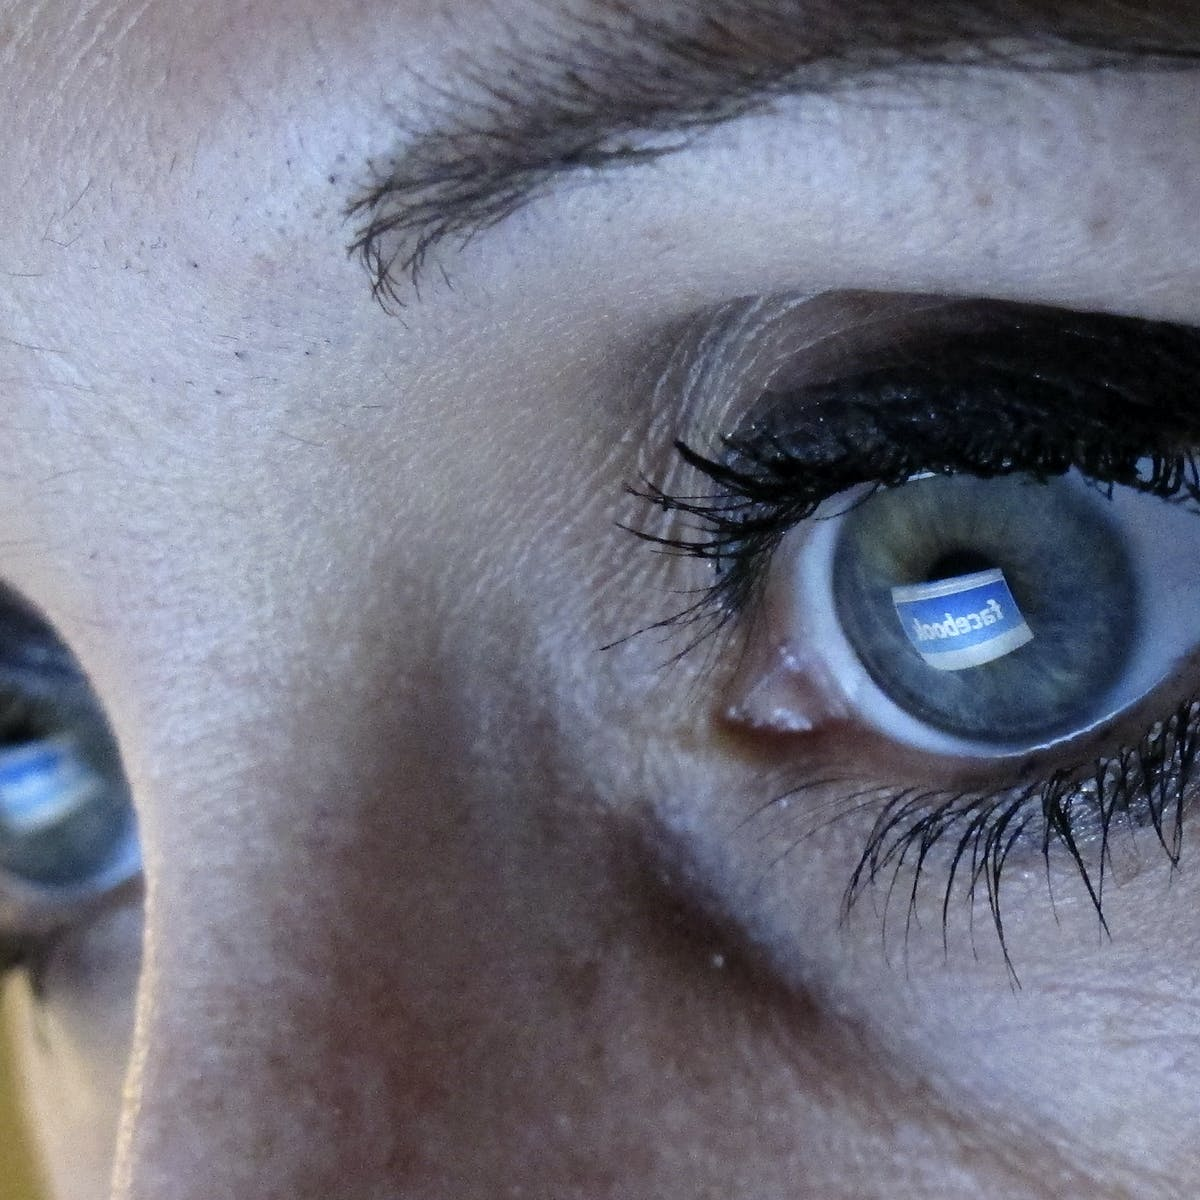 Facebook stalking your ex can become addictive – and hurt